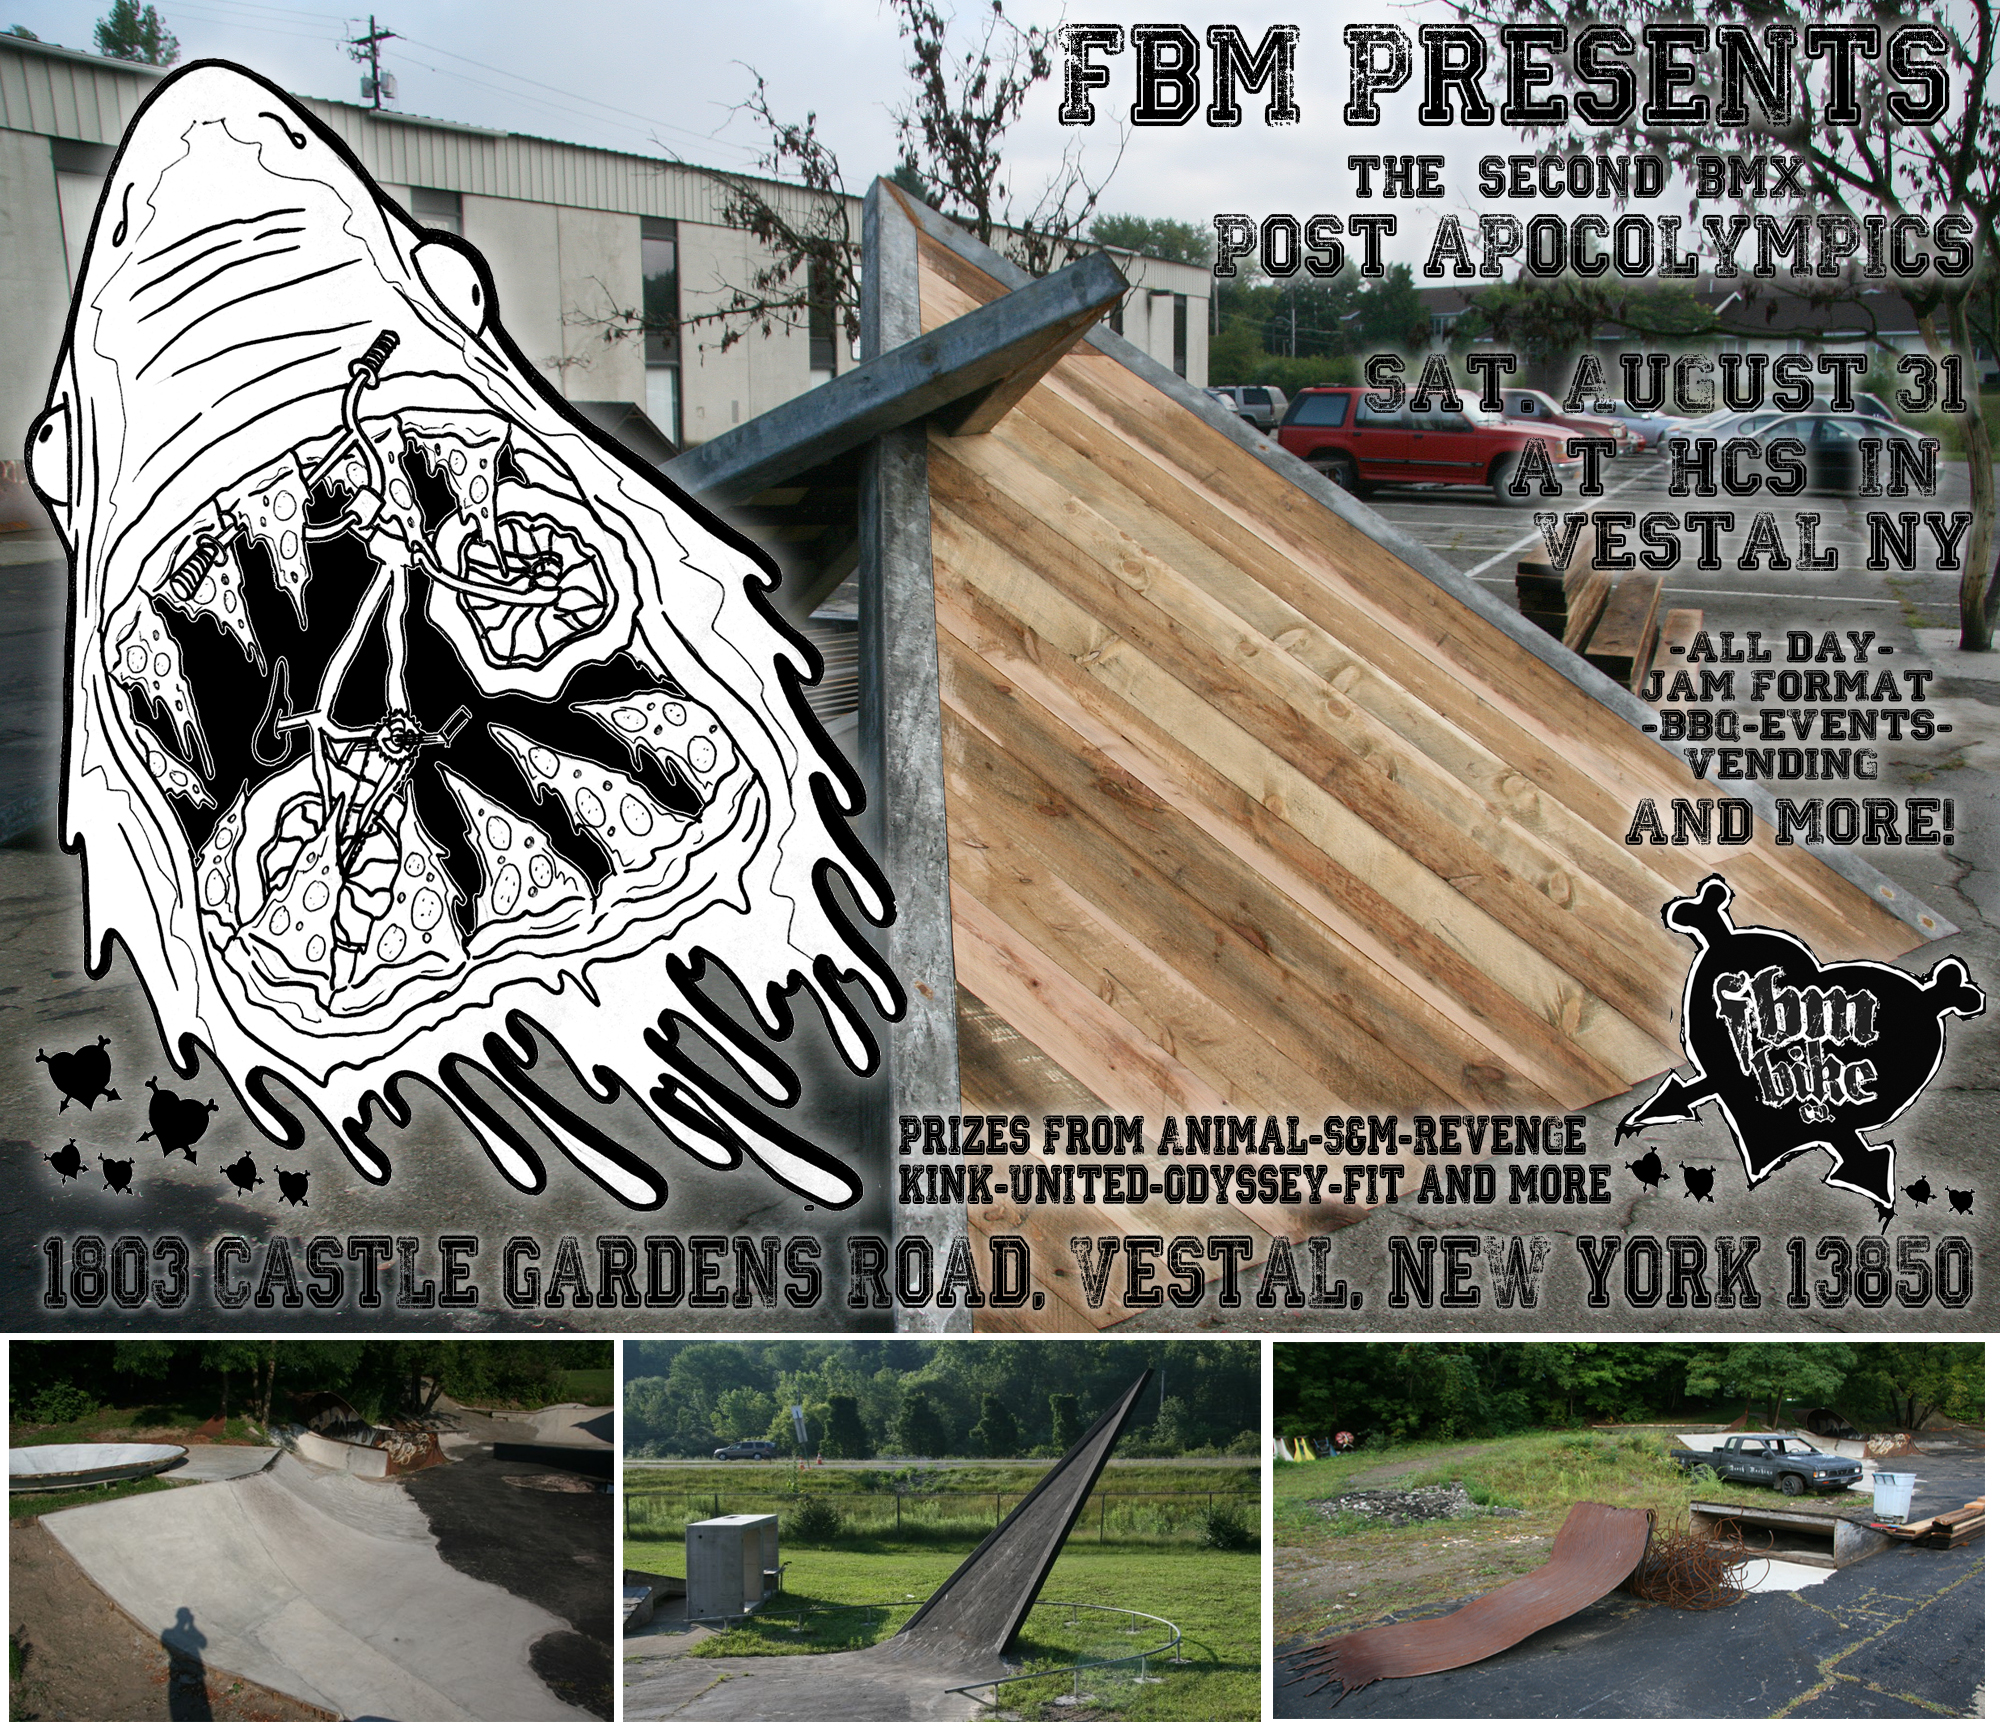 This Saturday At HCS, FBM Is Hosting A Jam At 1803 Castle Gardens Road,  Vestal, New York 13850, Where Derek Nelson Has Crafted Some Of The Wildest  Ramps ...